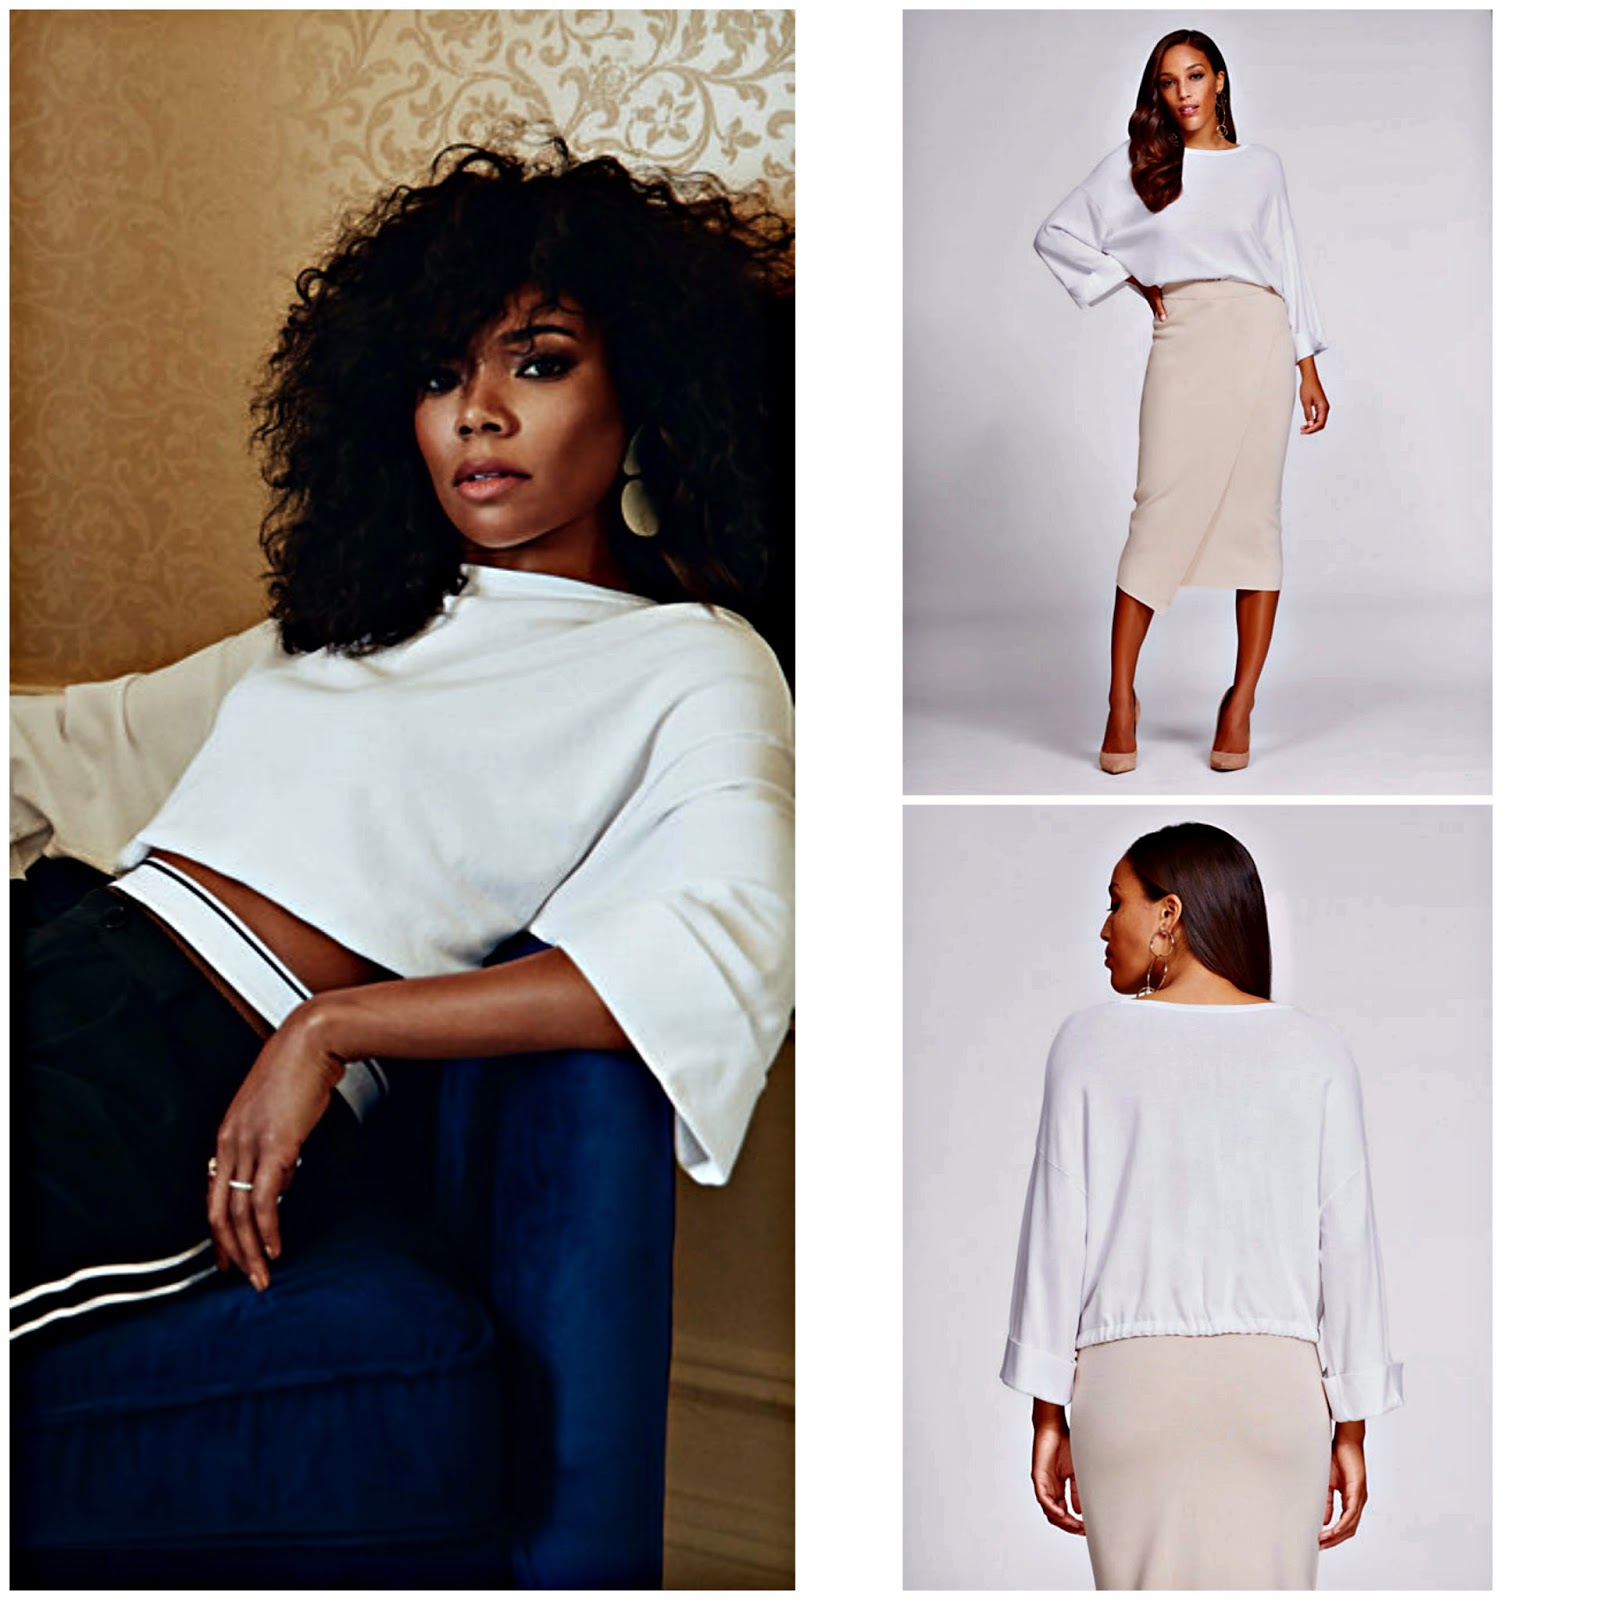 Click here to buy DRAWSTRING CROP SWEATER, to dress up or down this fall